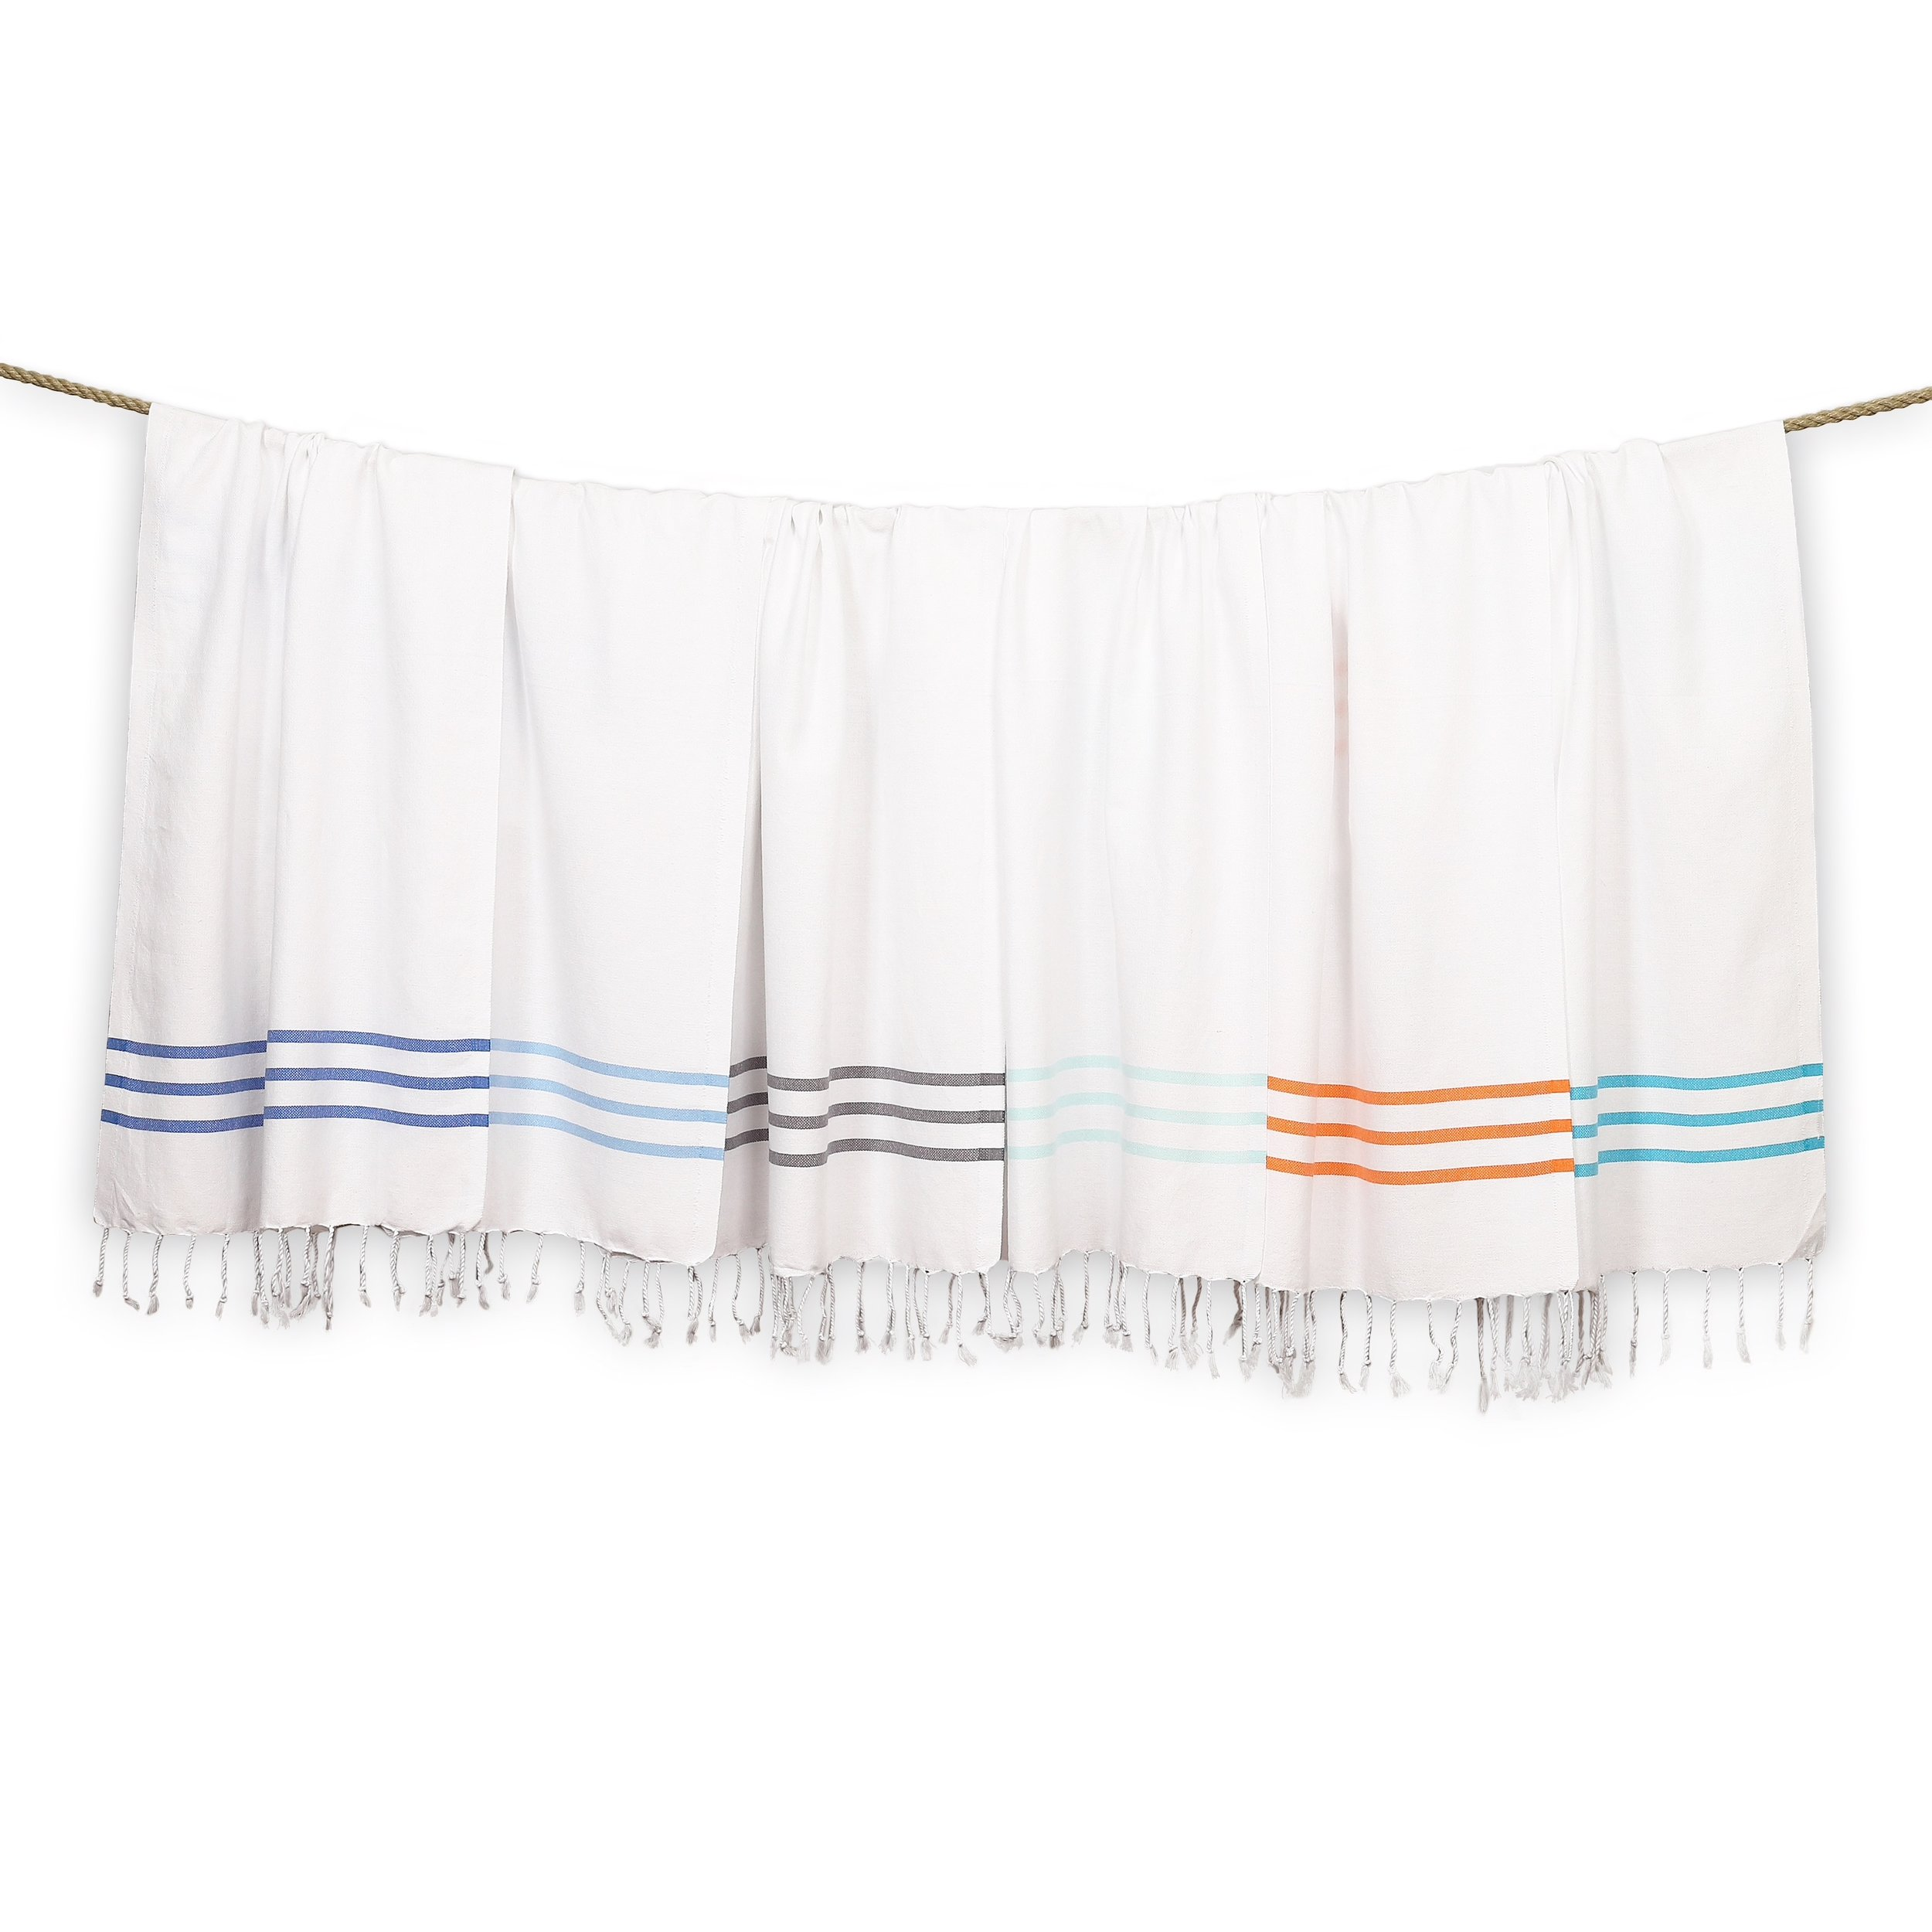 Authentic-Ella-Pestemal-Fouta-Turkish-Cotton-Hand-Kitchen-Towel-e208783c-5a98-4c4f-93ee-dff2f5ba1999.jpg copy.jpg